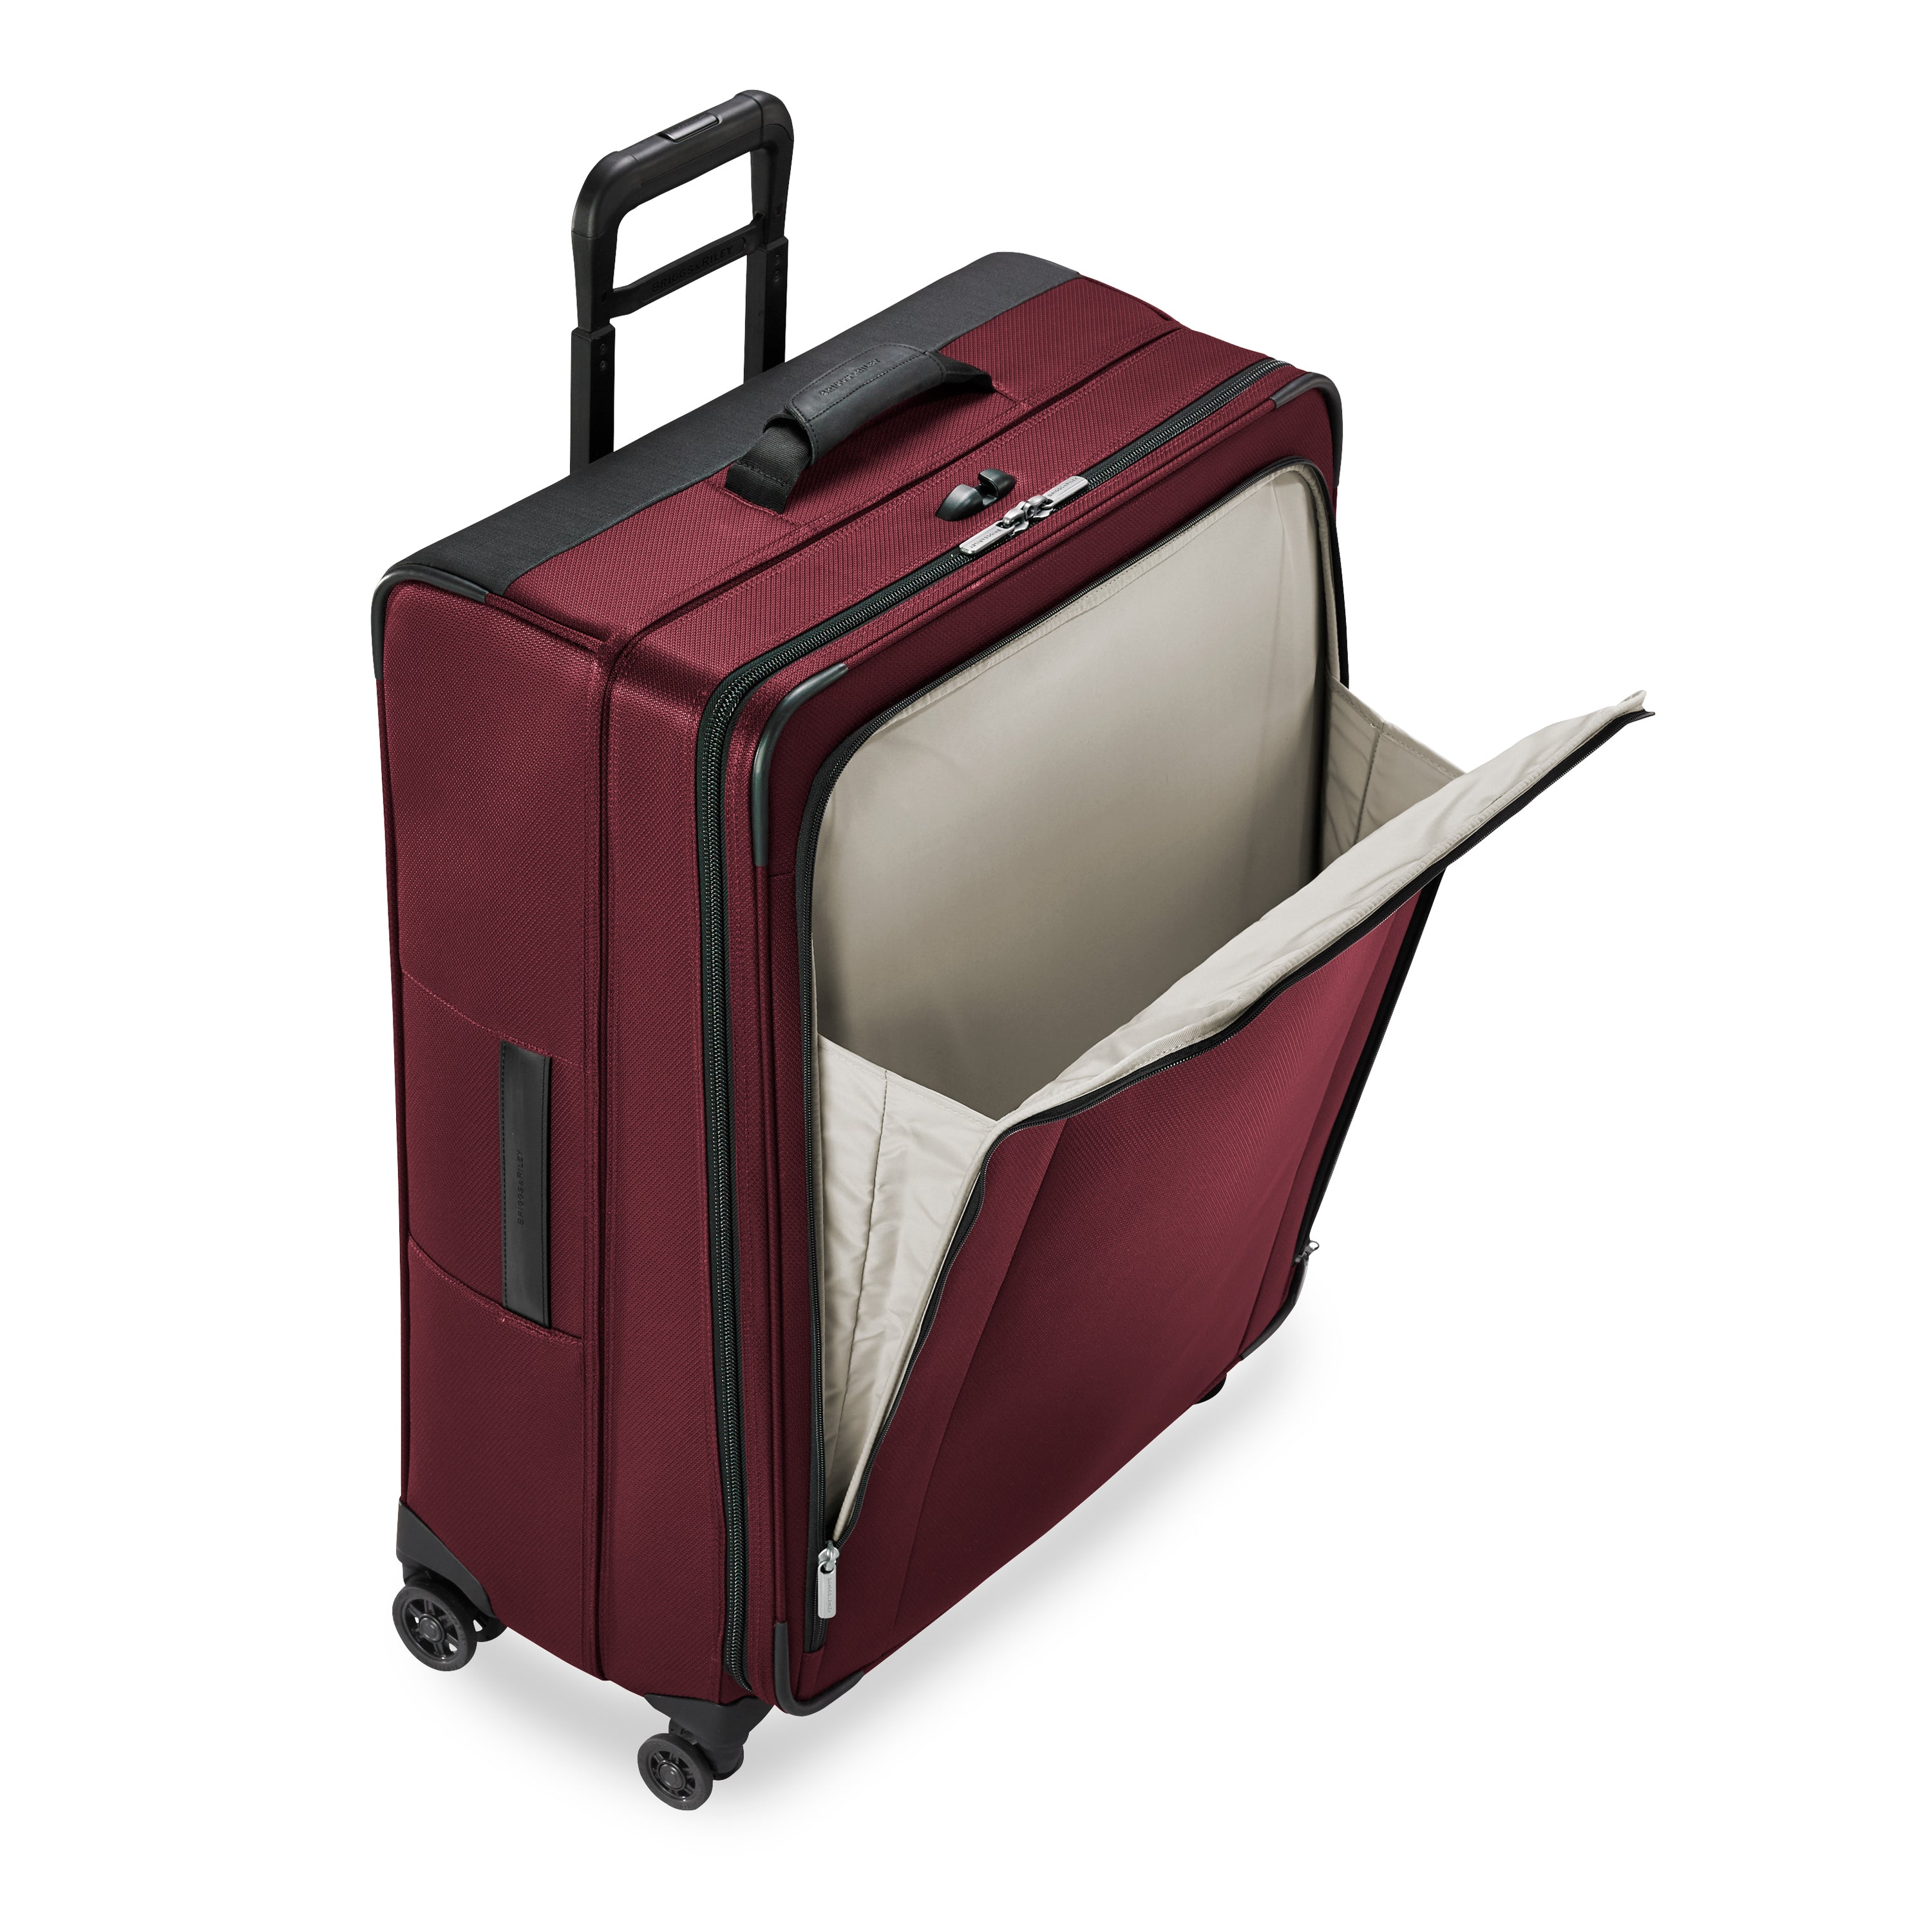 Briggs & Riley Transcend Large Expandable Spinner - Merlot | MEGO